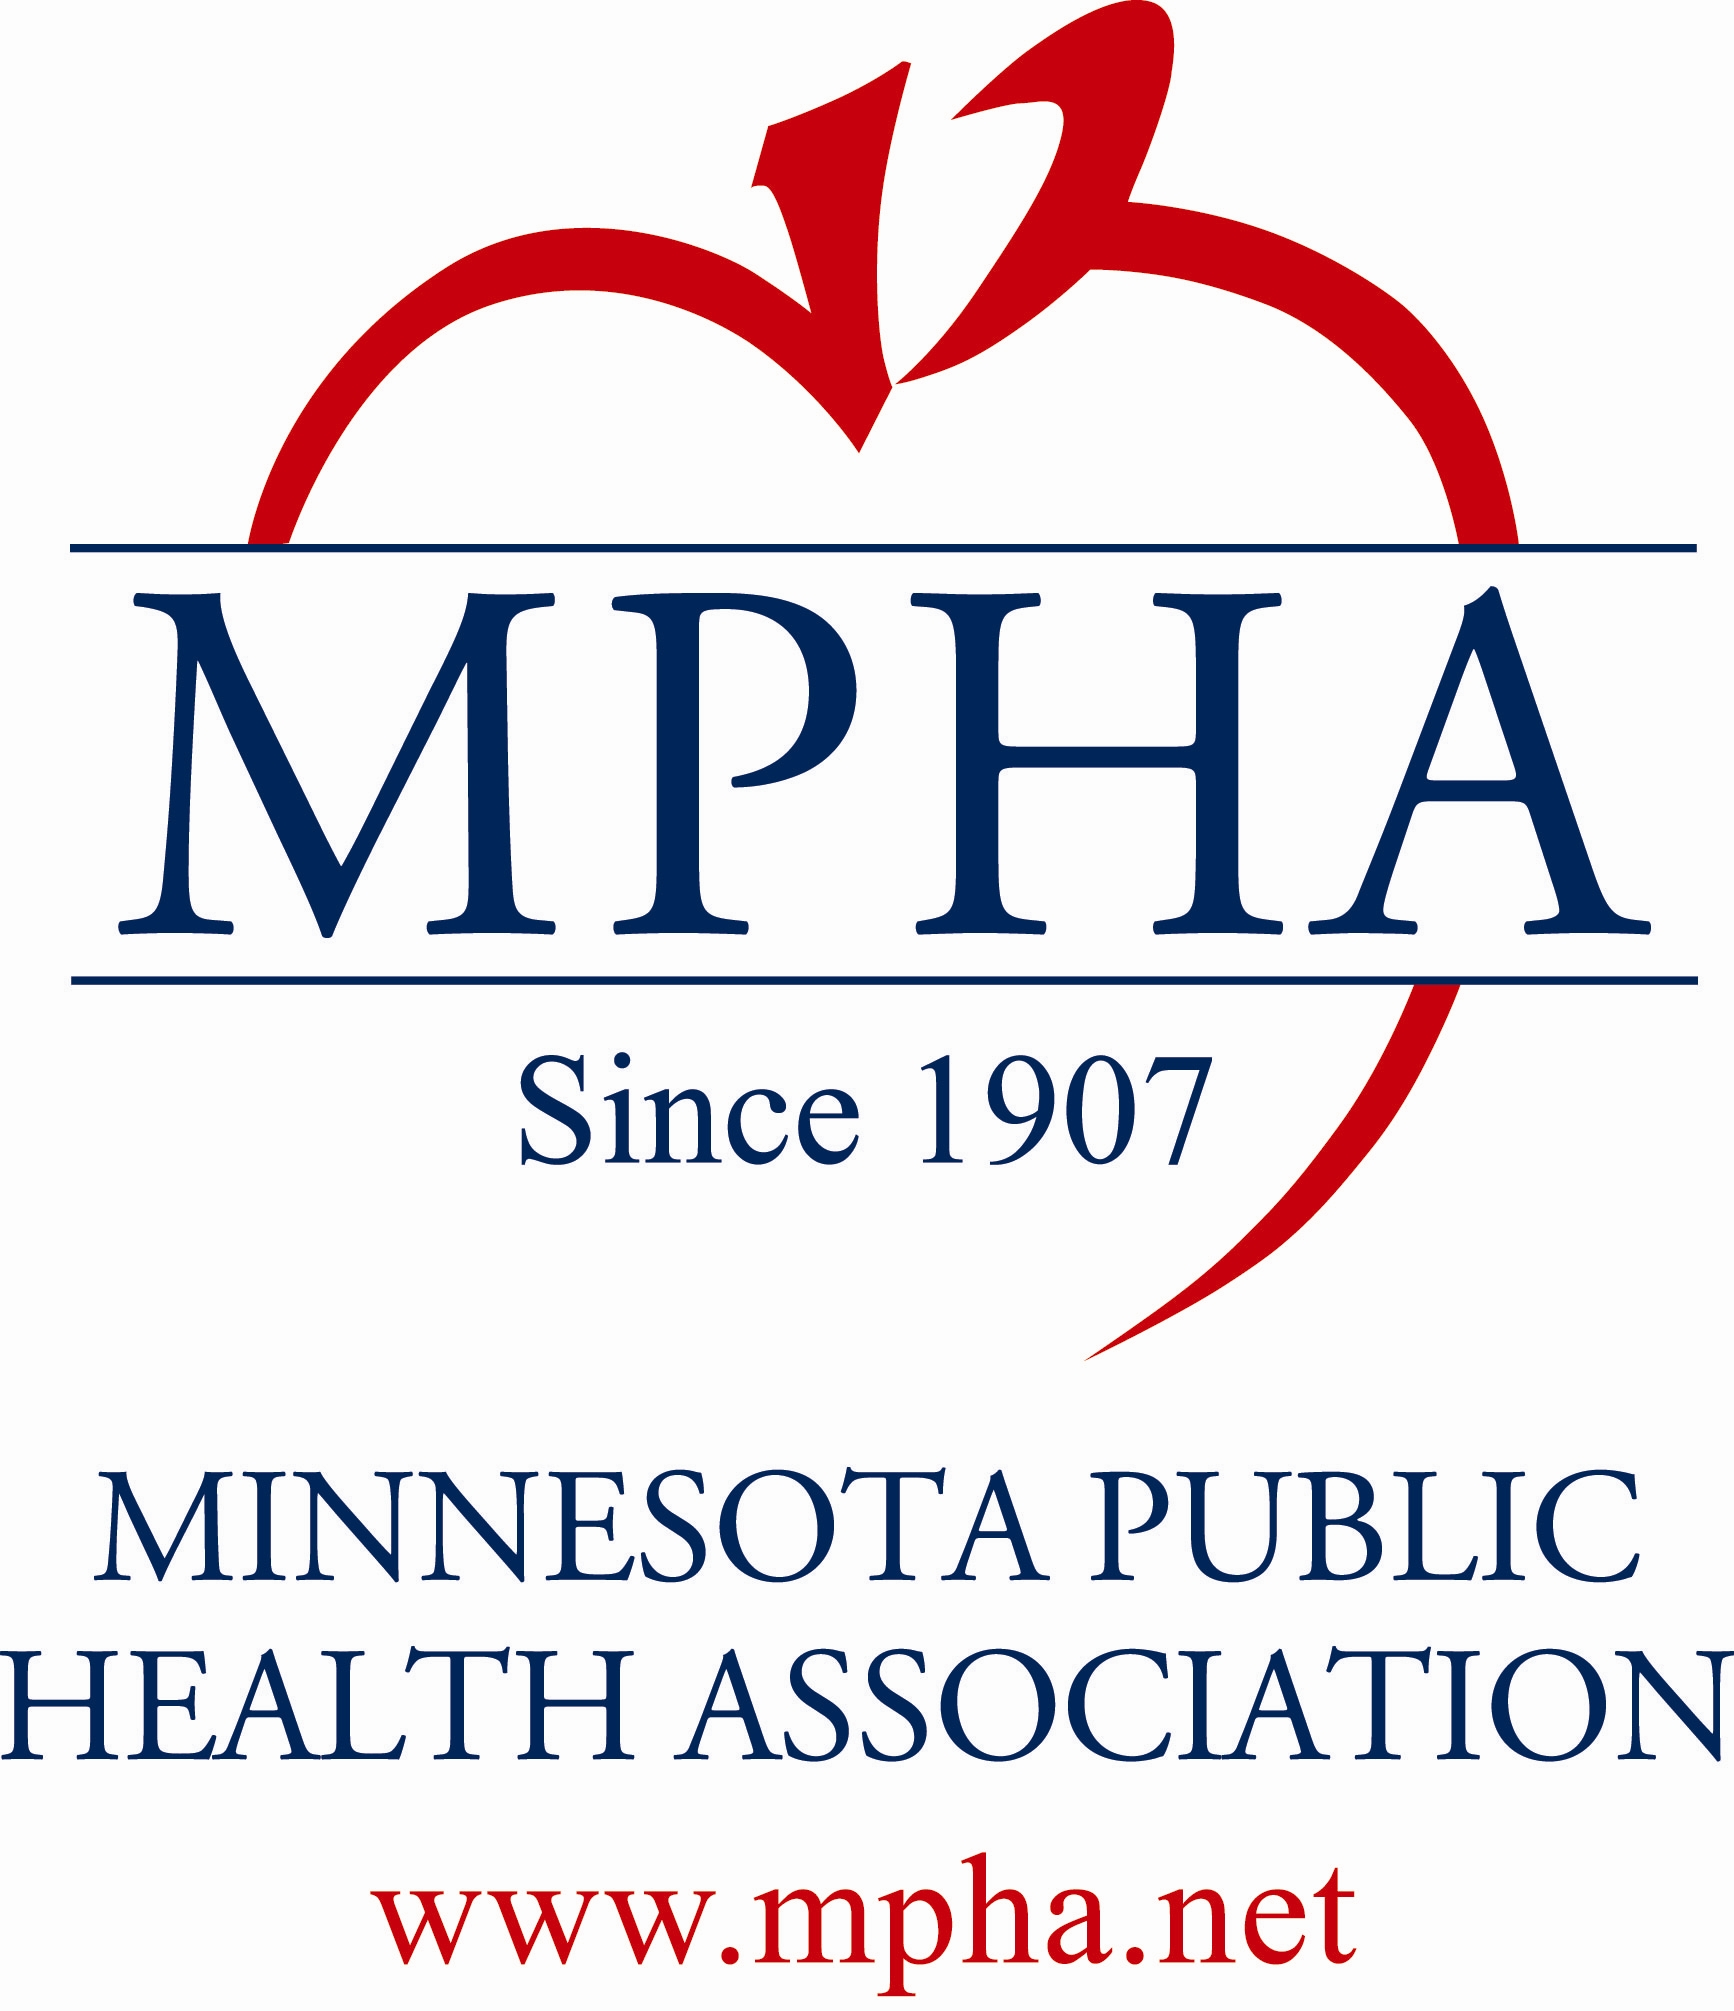 Minnesota Public Health Association